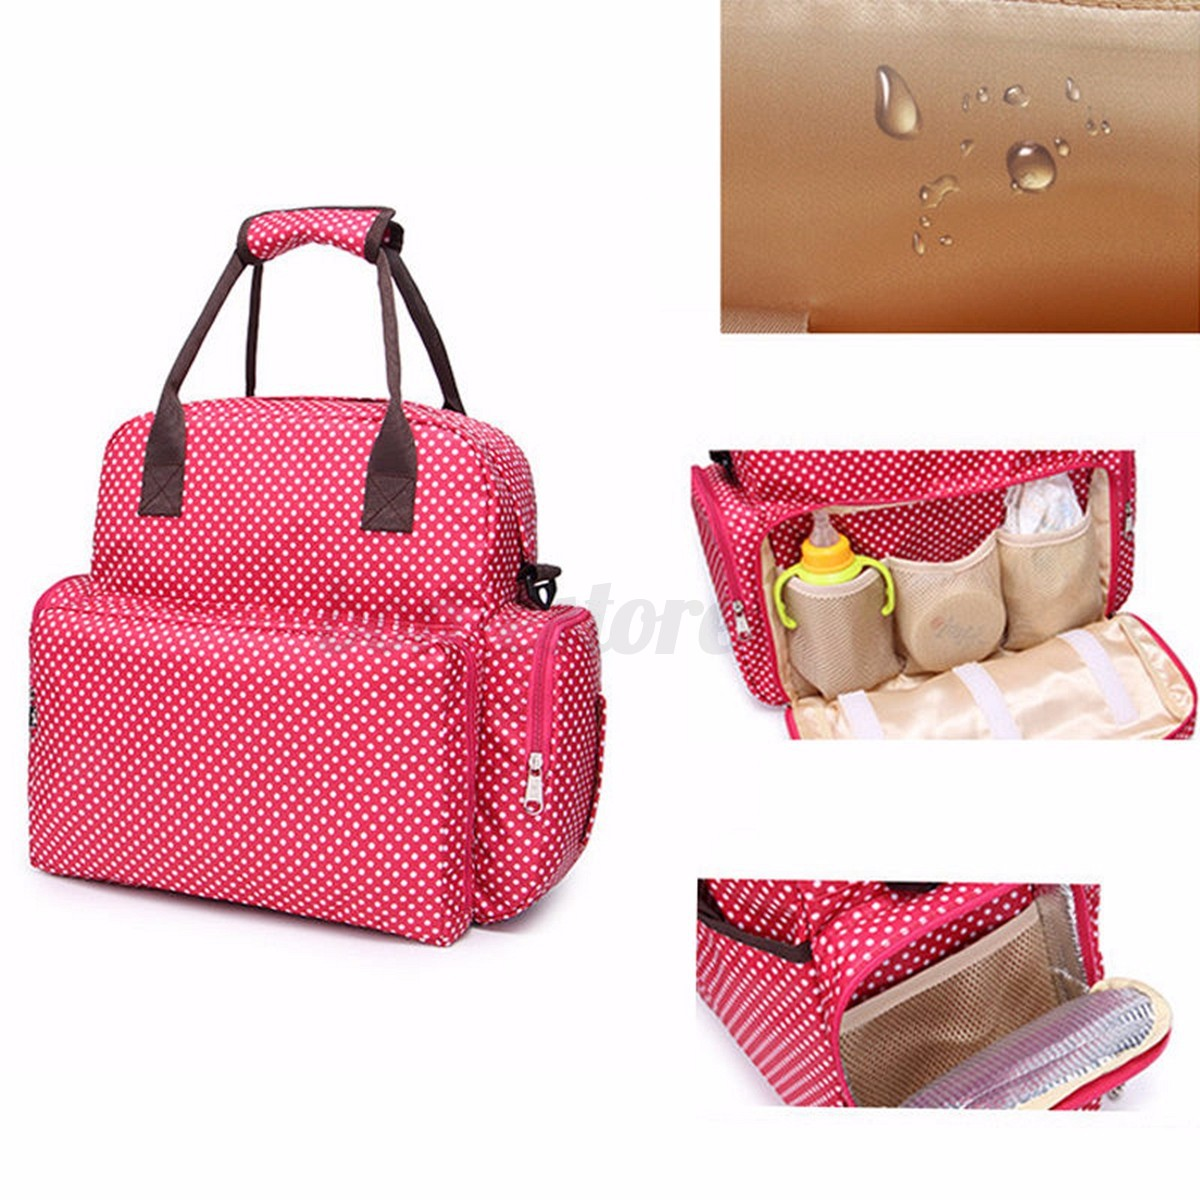 large baby diaper nappy backpack changing bag mummy shoulder bag tote handbag ebay. Black Bedroom Furniture Sets. Home Design Ideas